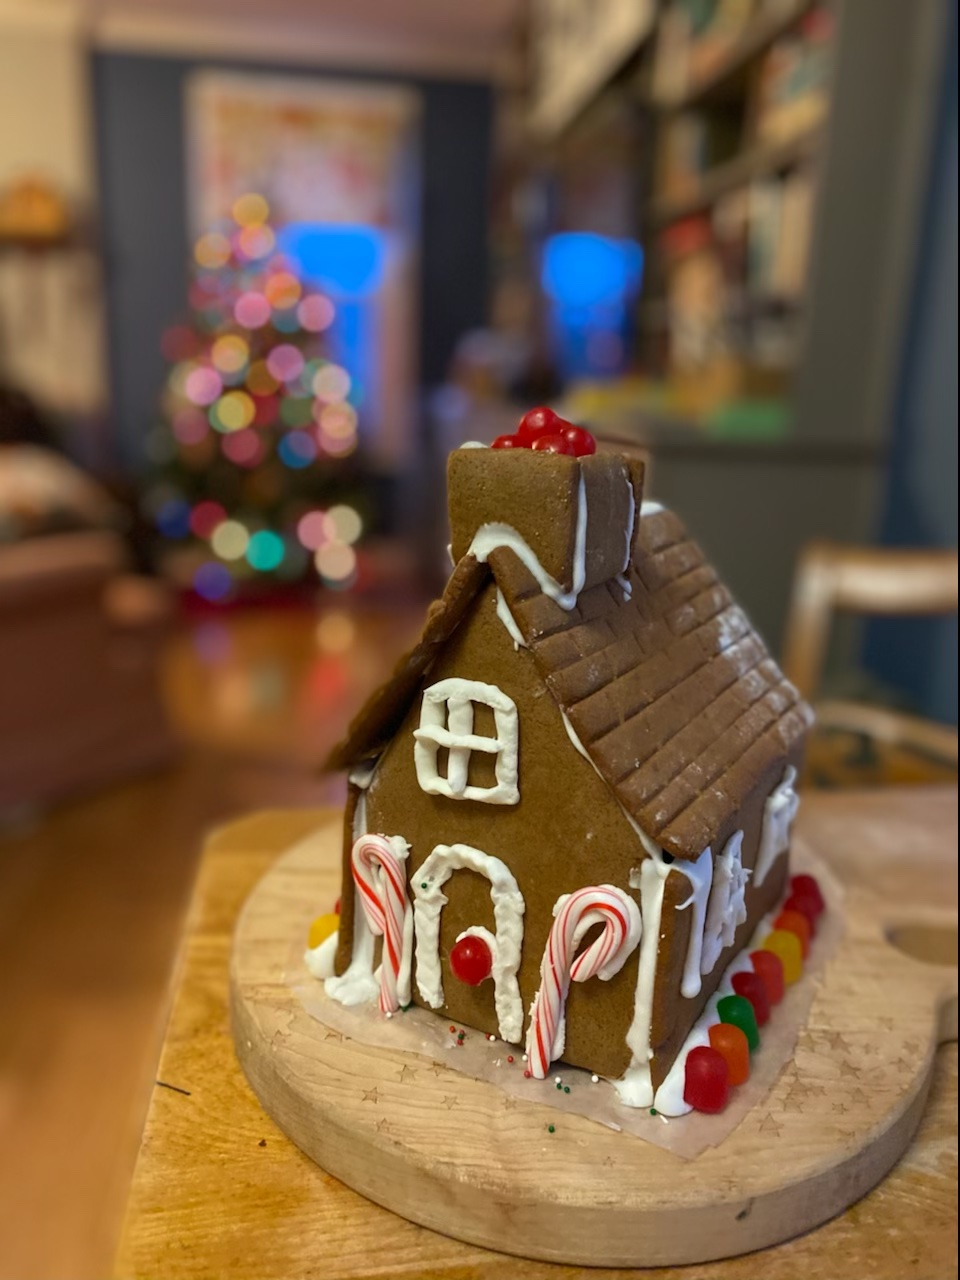 Tips for building your first homemade gingerbread house to maximize fun, and eliminate tears! | Photo © Kate Etue for Cool Mom Eats